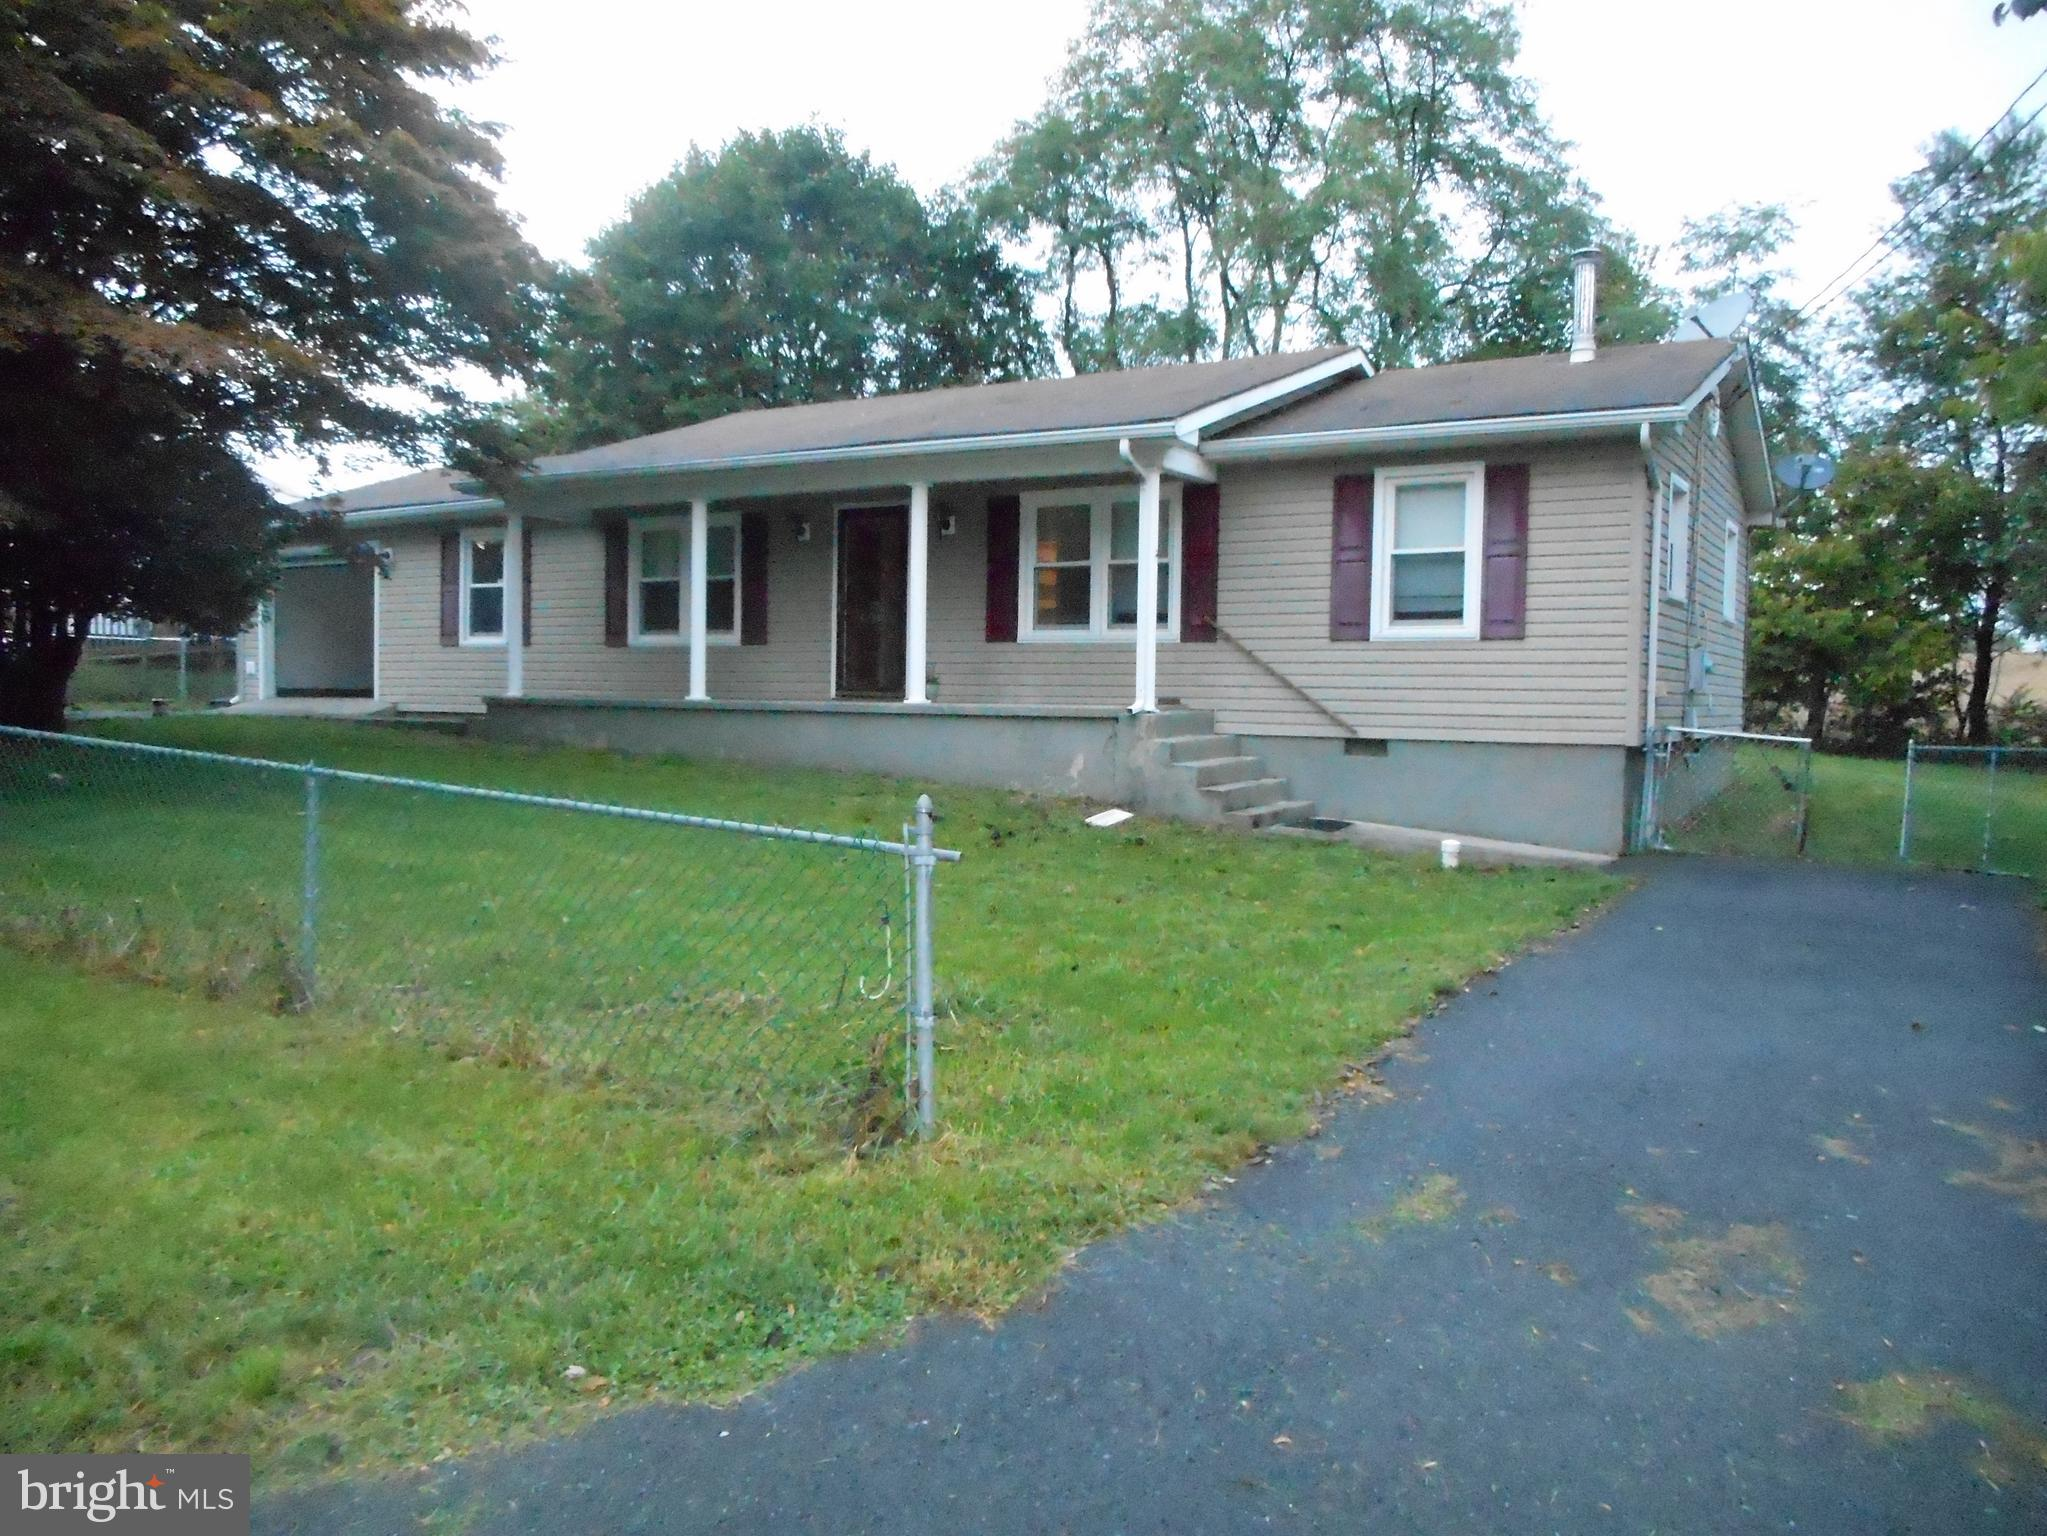 Attractive ranch ready for new family. 3 BR 1.5 BA, large utility/laundry room, hardwood flooring, s